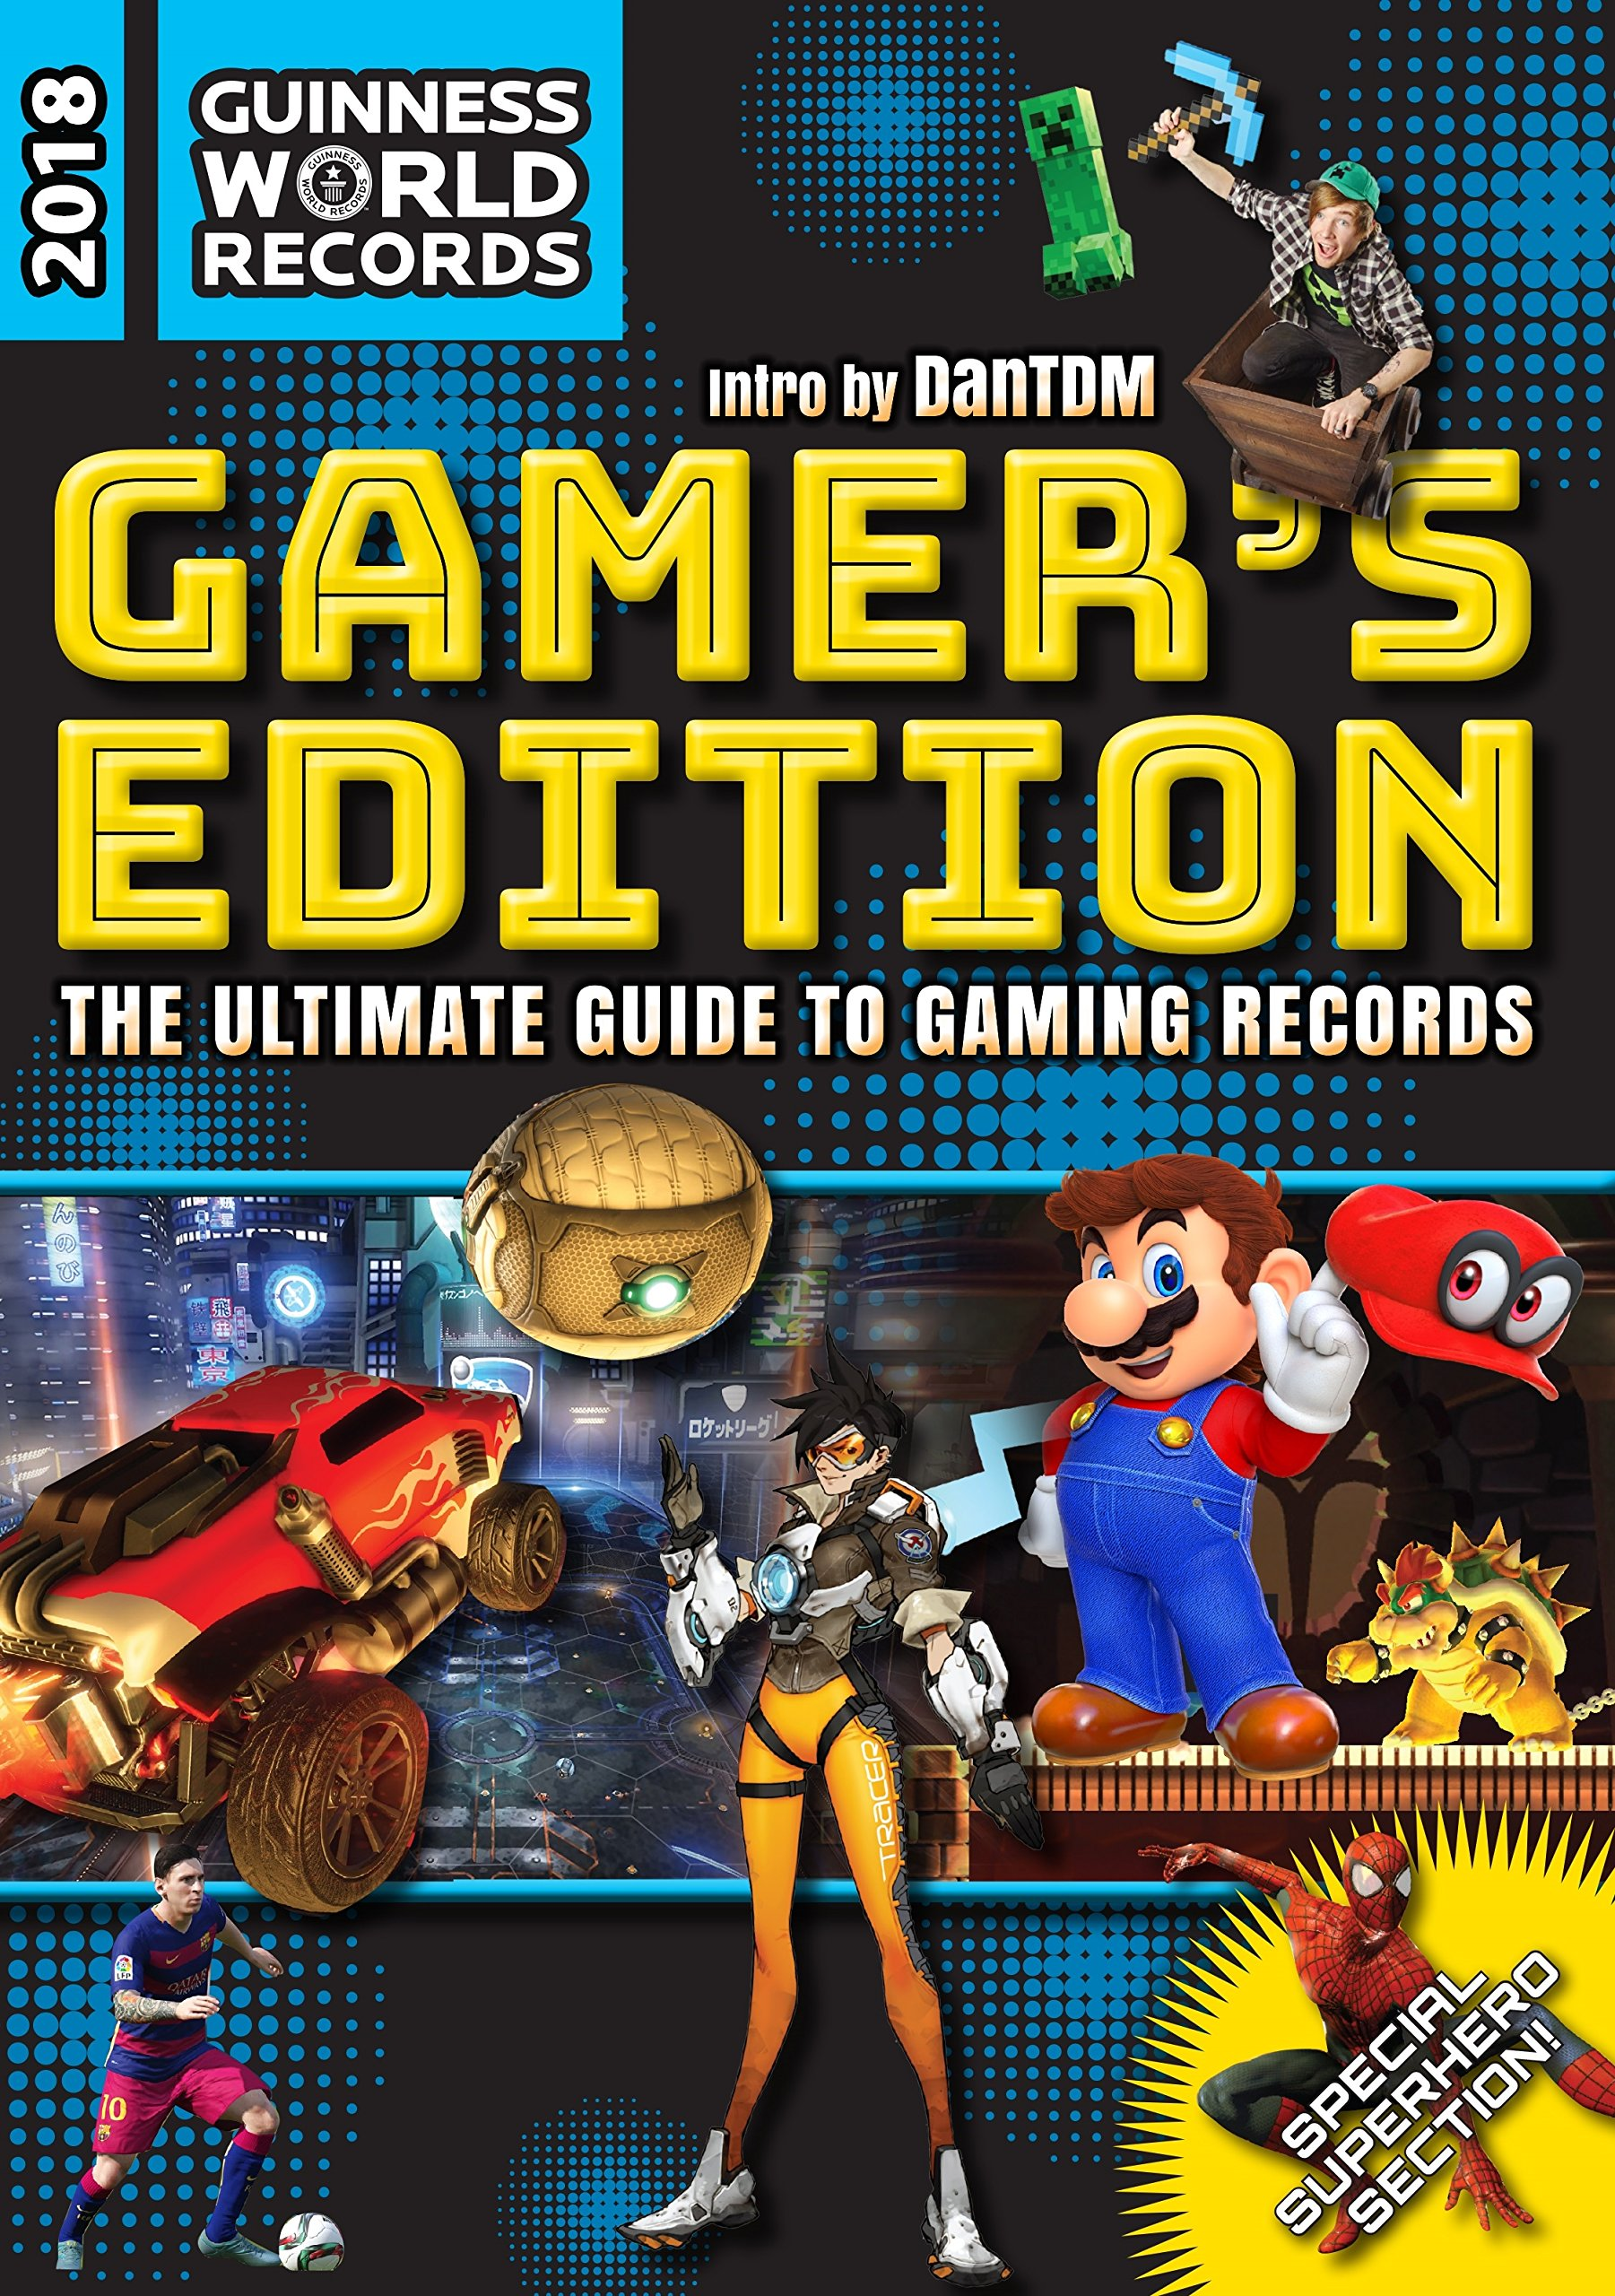 Download Guinness World Records 2018 Gamer's Edition: The Ultimate Guide to Gaming Records pdf